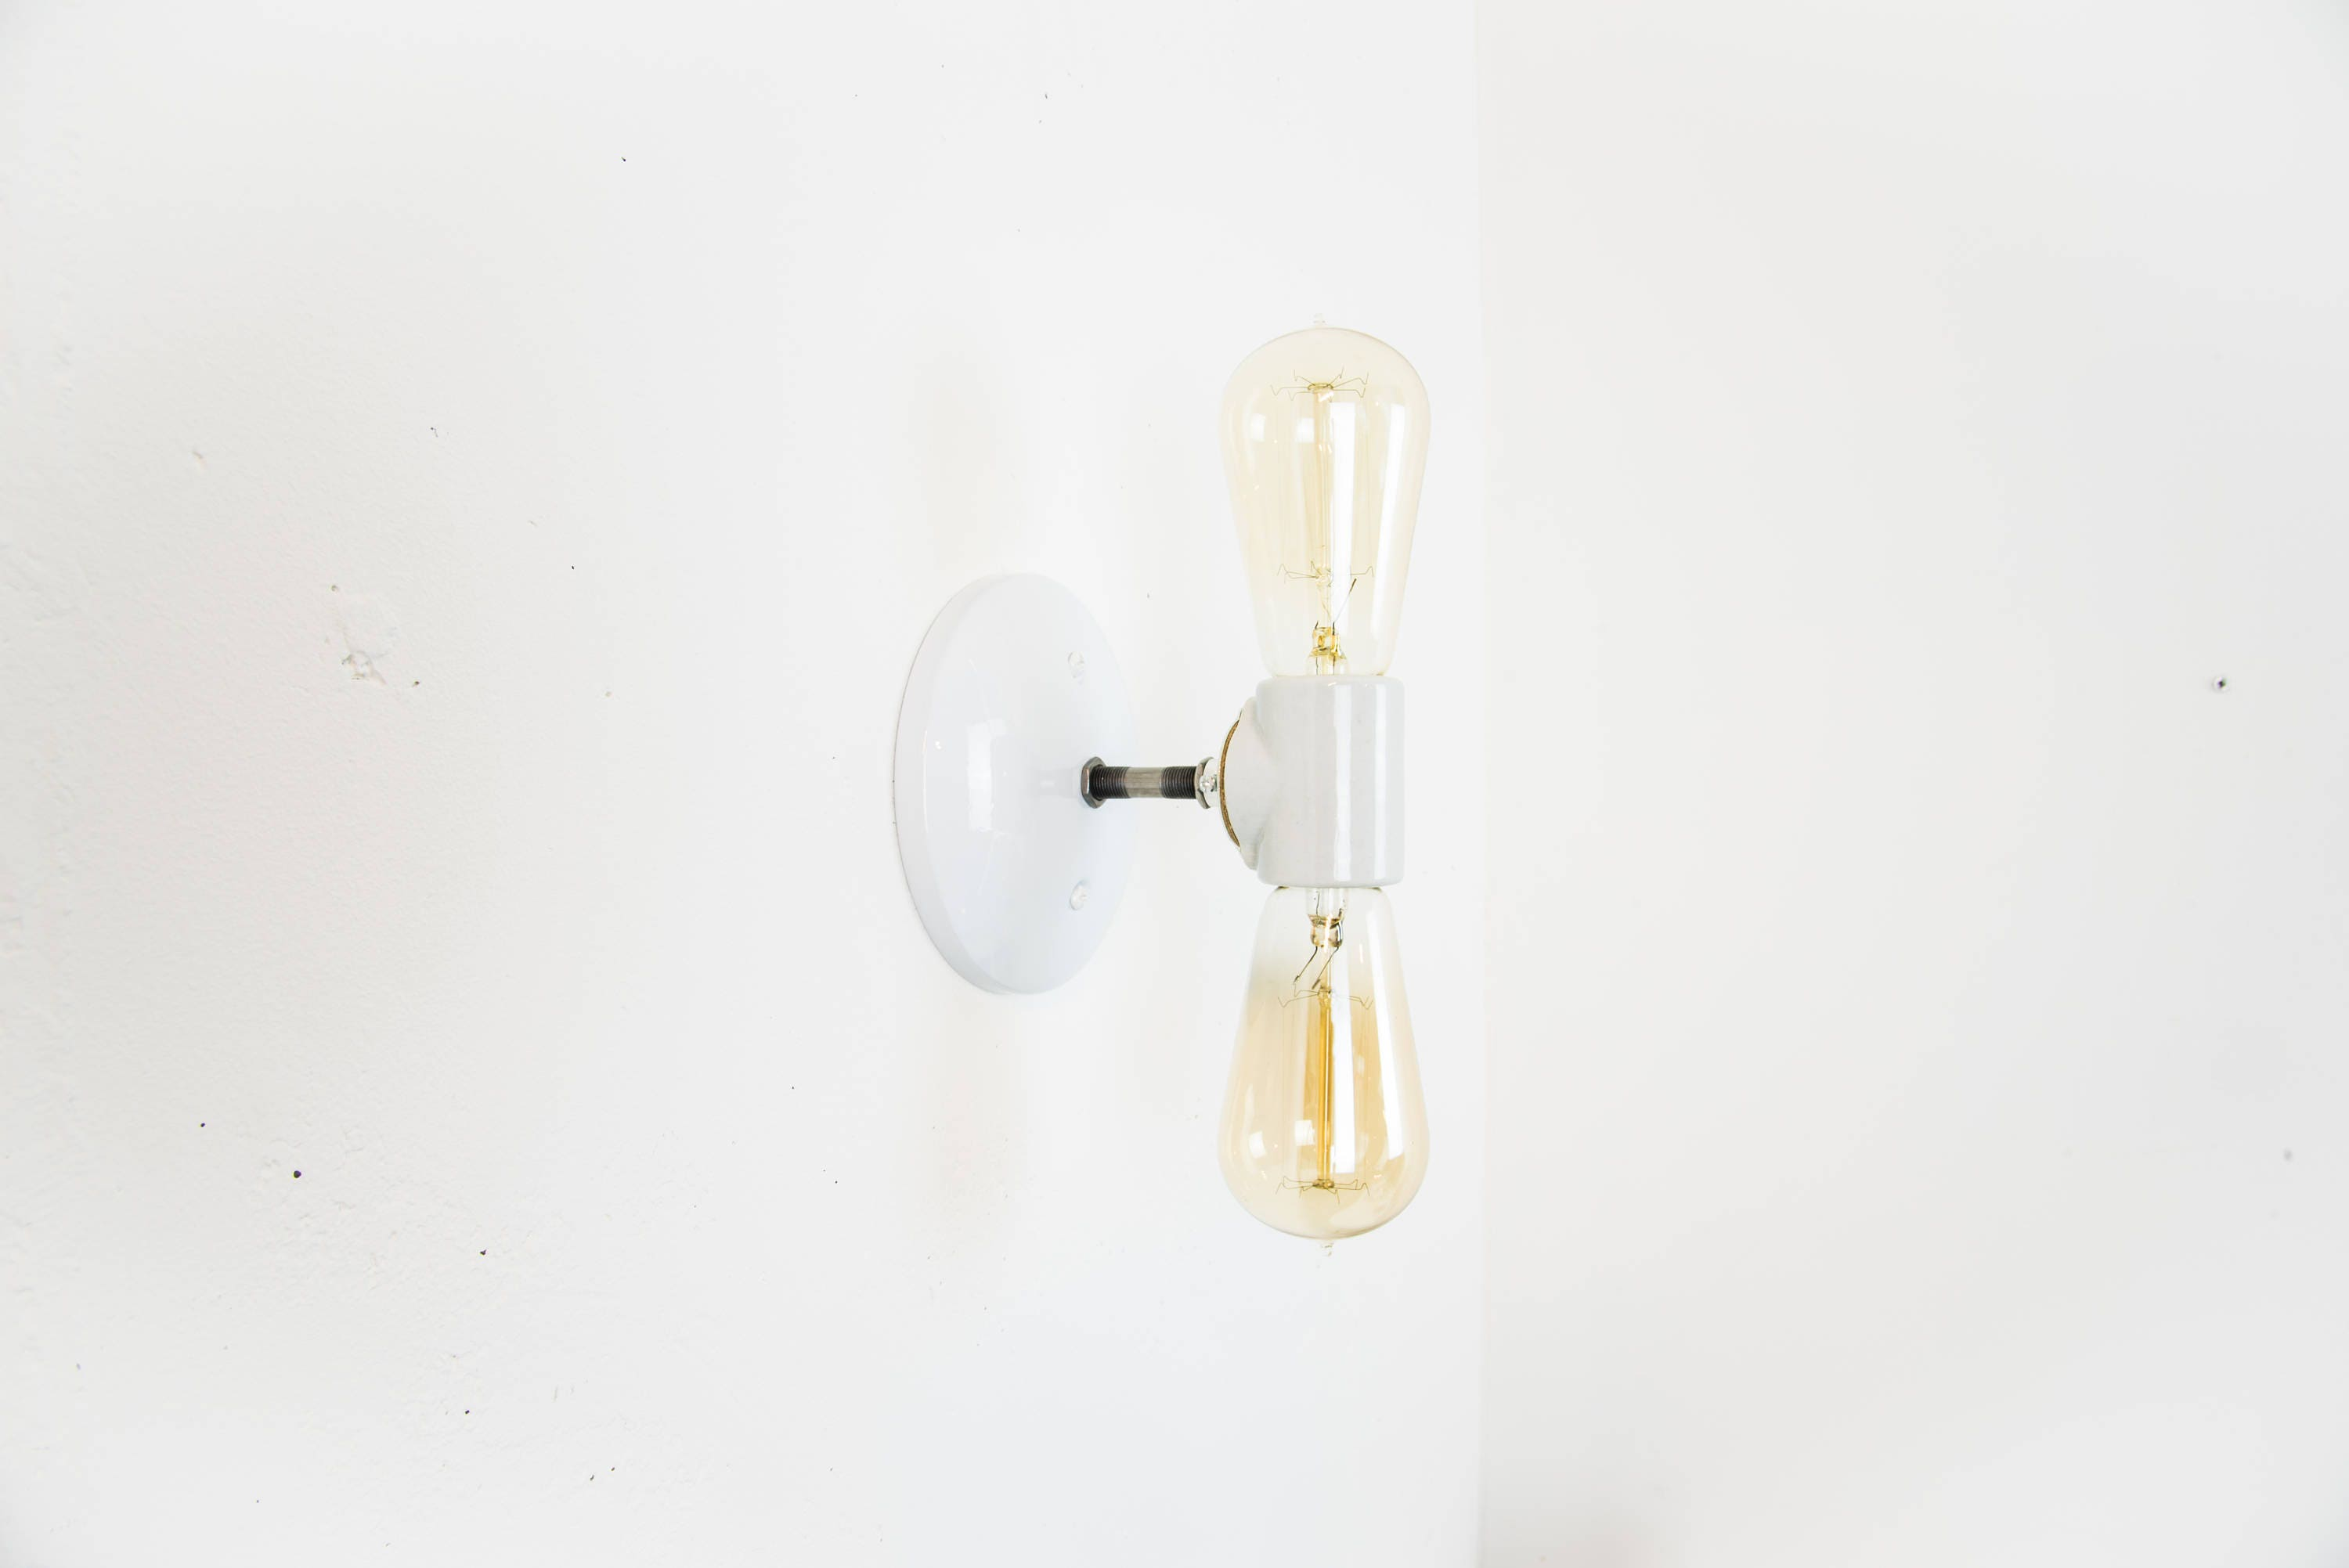 sconces wall lighting. White Wall Sconce - Lamp Industrial Modern Light Plug In Sconces Lighting Accent Double D